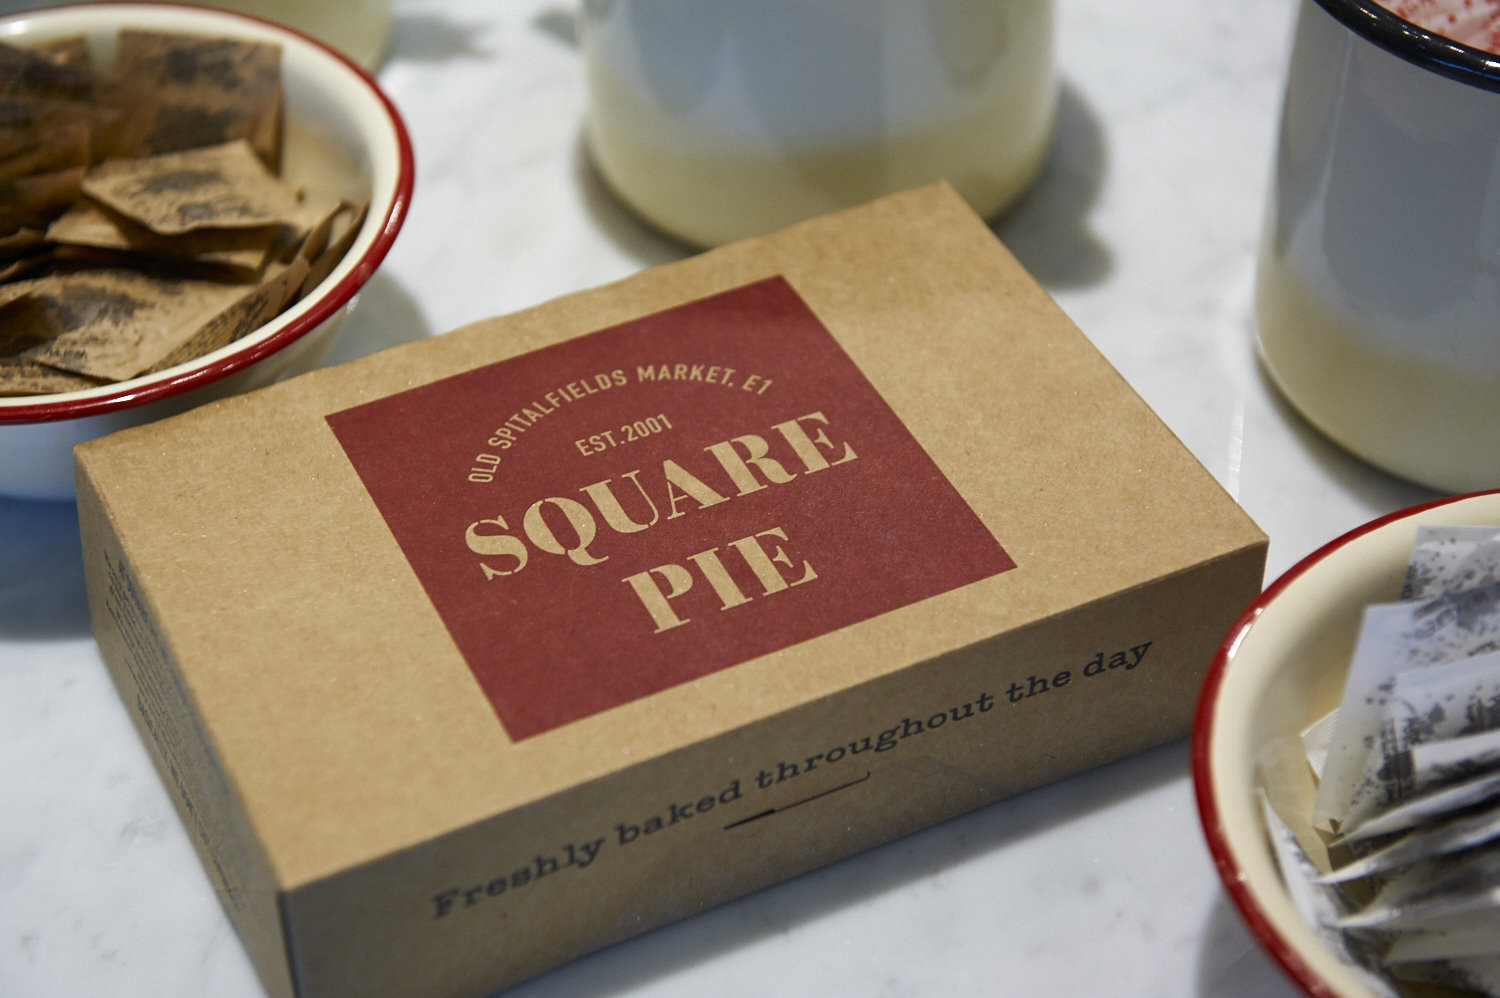 Square Pie featured in Design Week.